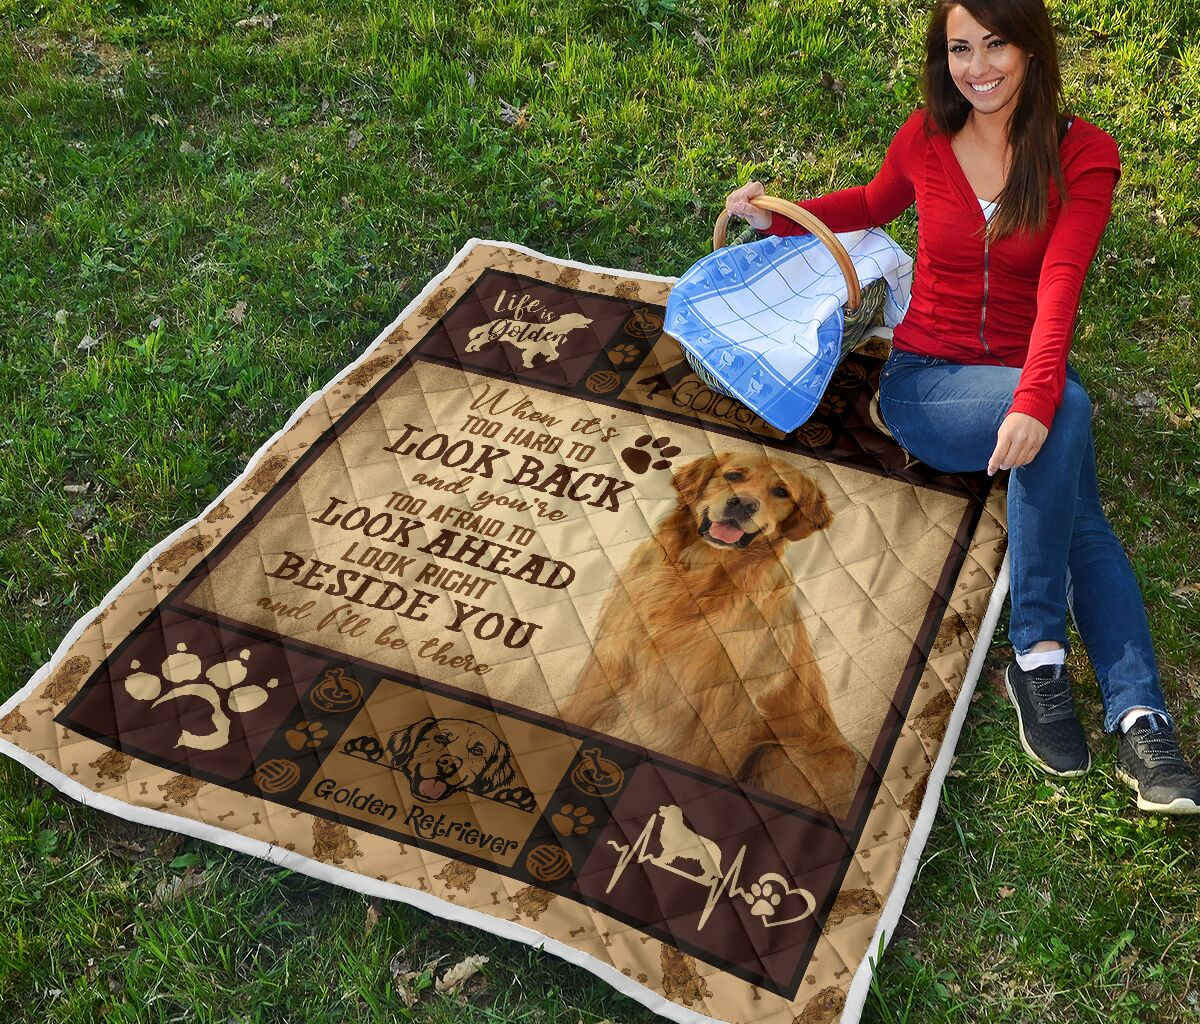 Golden Retriever when it's too hard to look back quilt blanket - picture 2